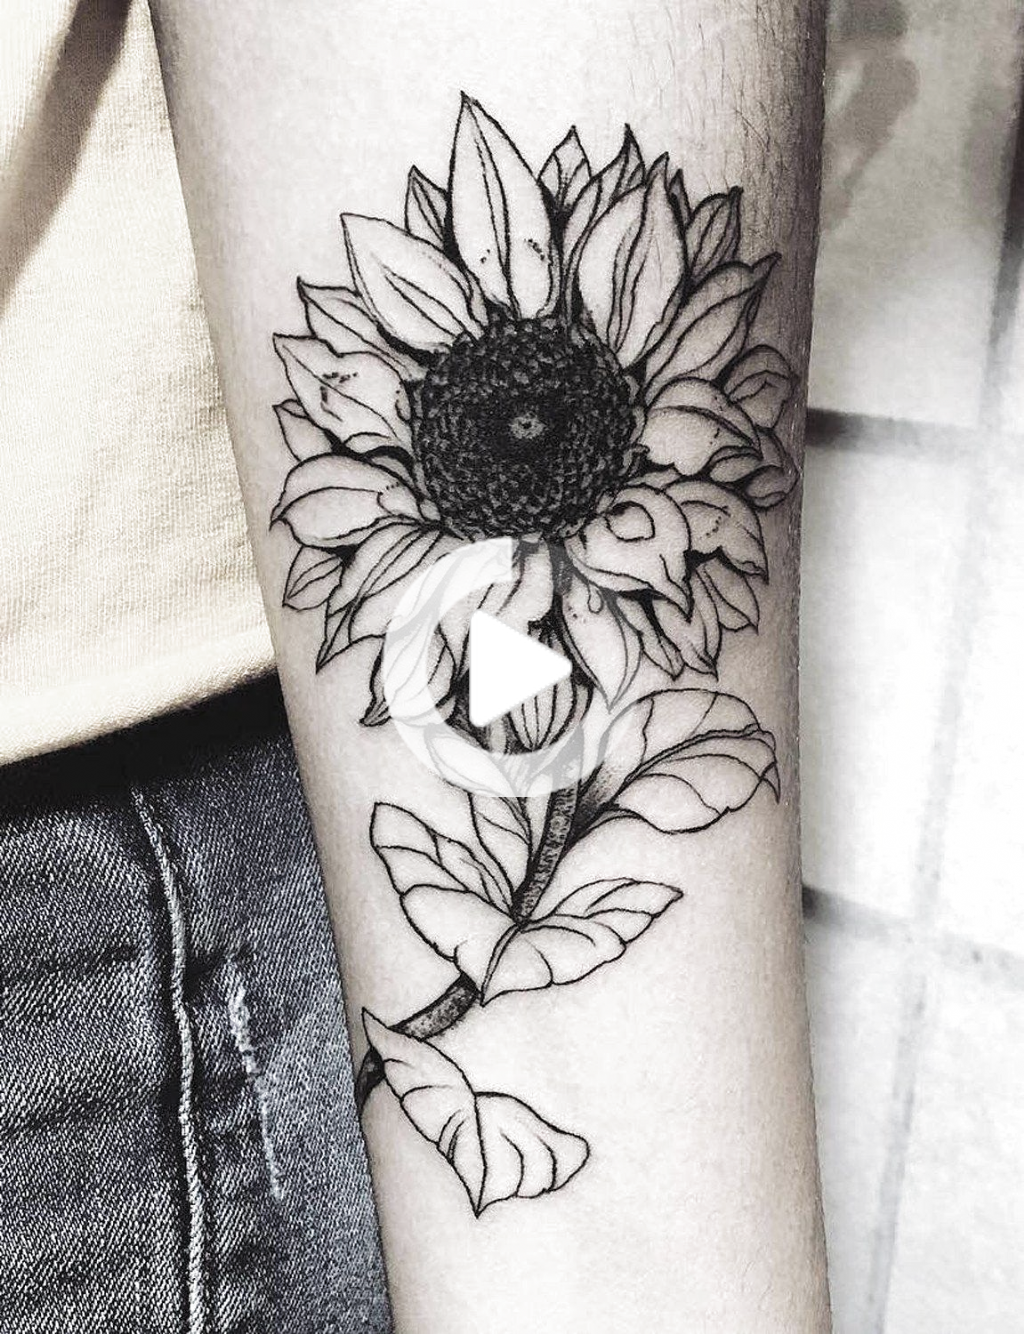 Full Black and White Realistic Vintage Floral Sunflower